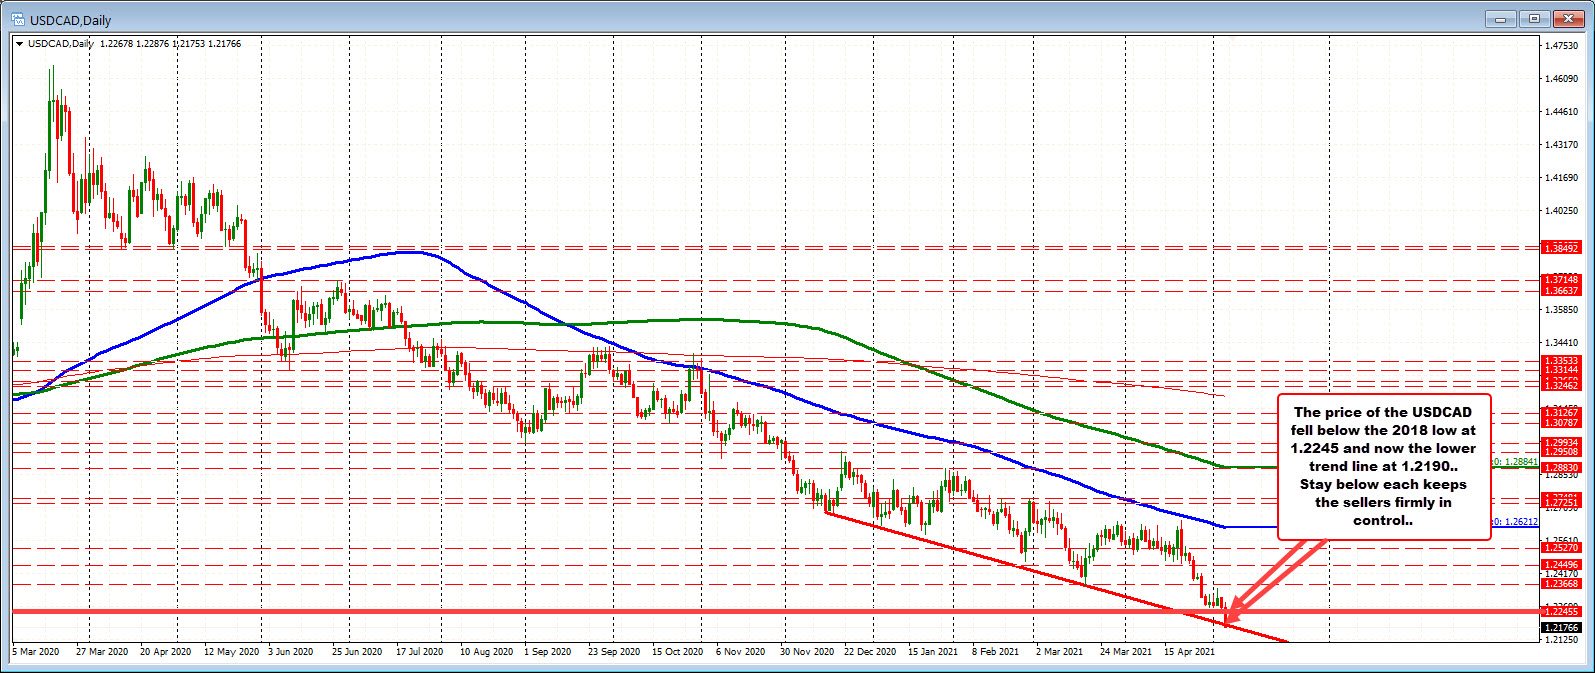 New lows for the USDCAD